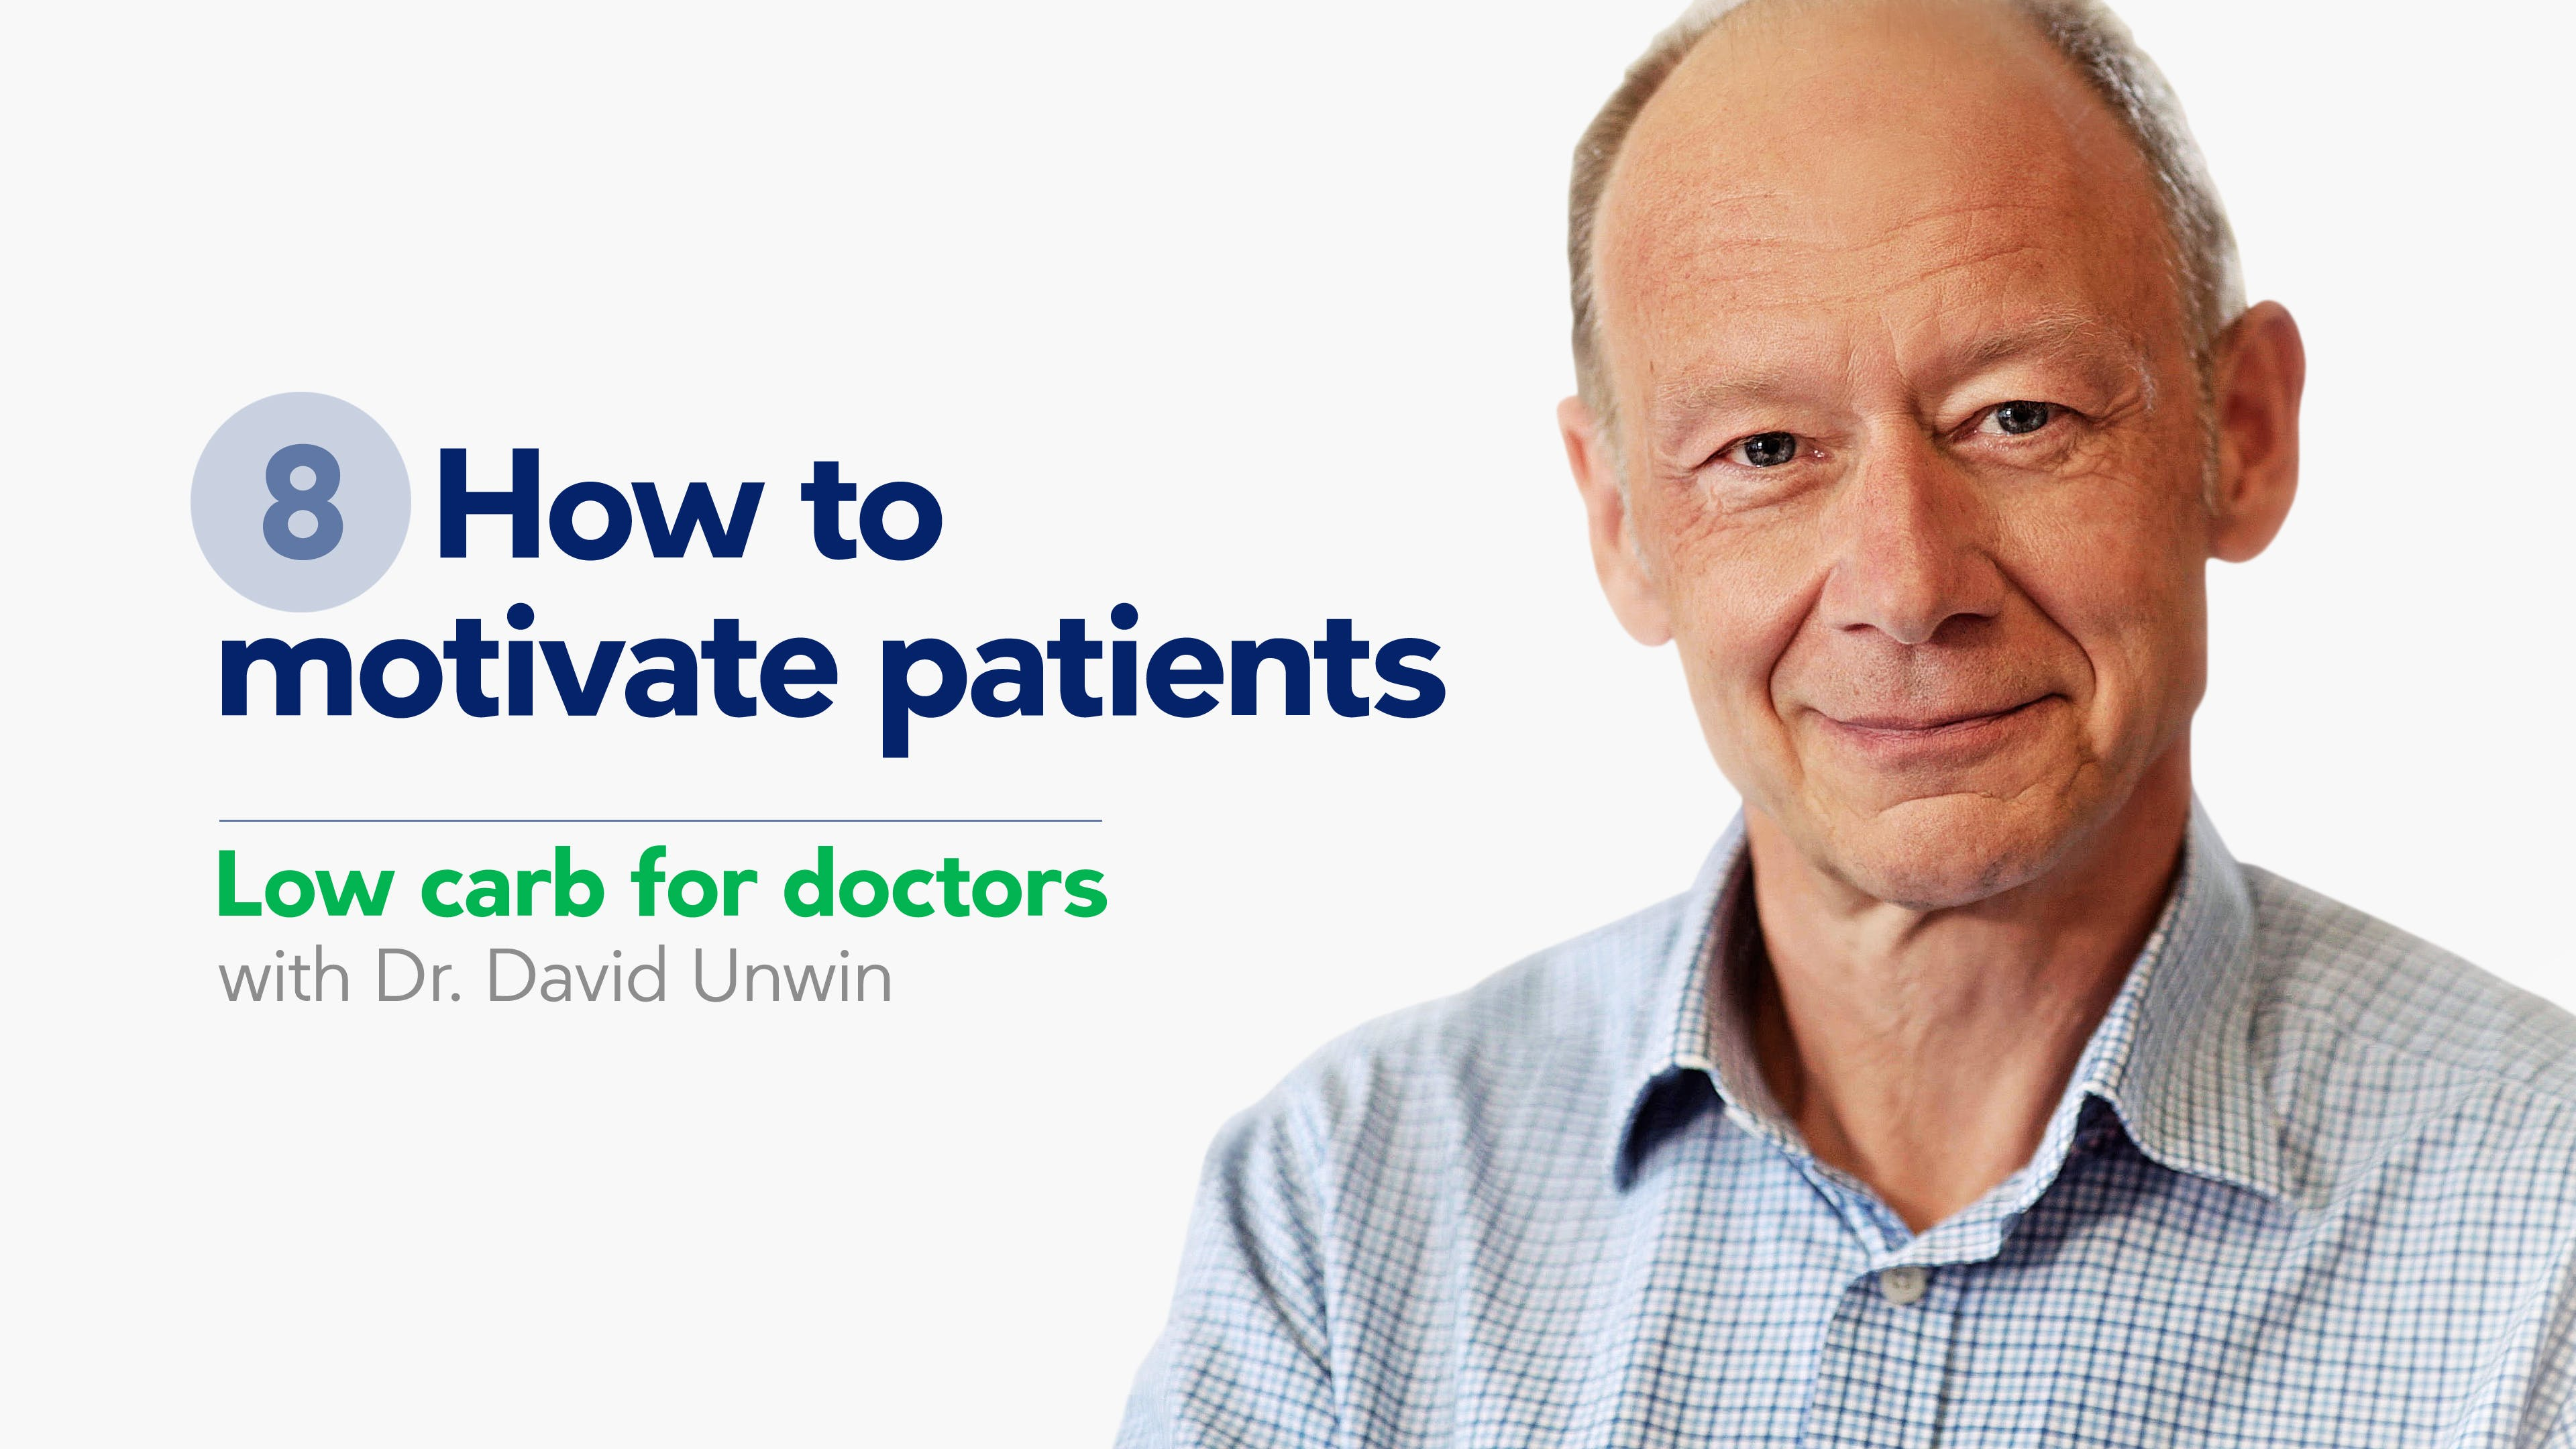 How to motivate patients